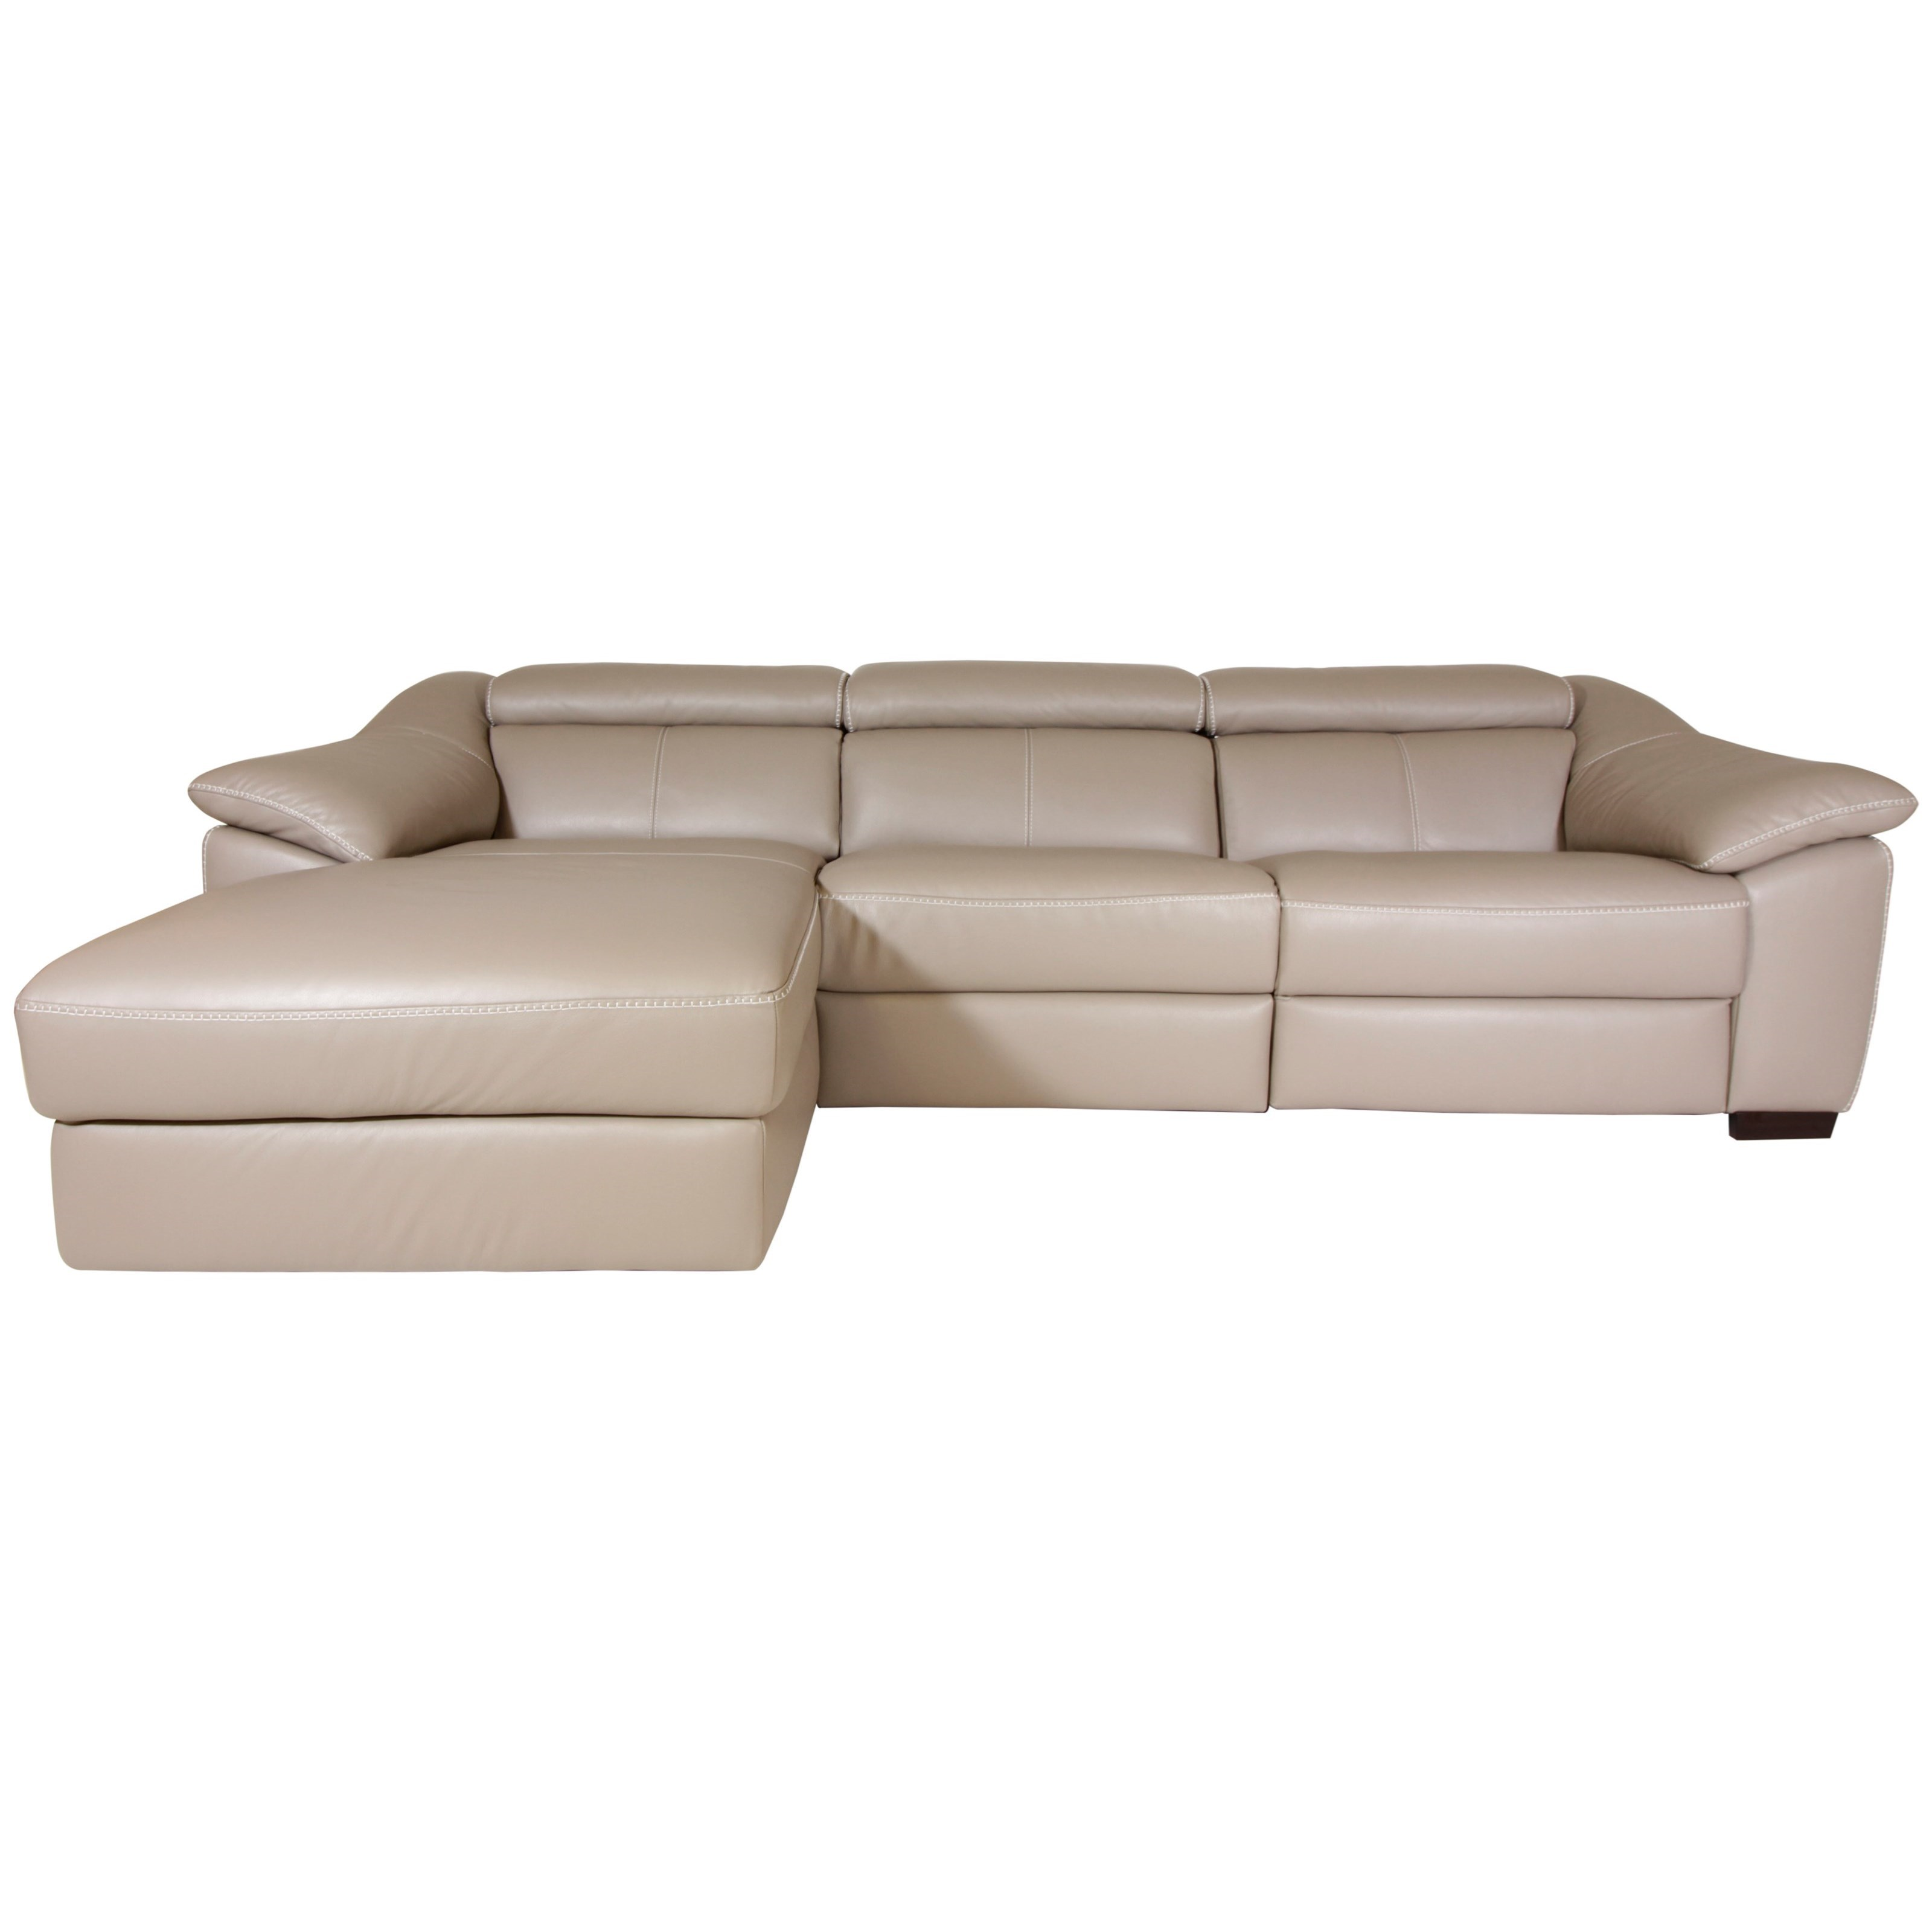 Emozione 3-Piece Power Reclining Sectional by Natuzzi Editions at Wilson's Furniture